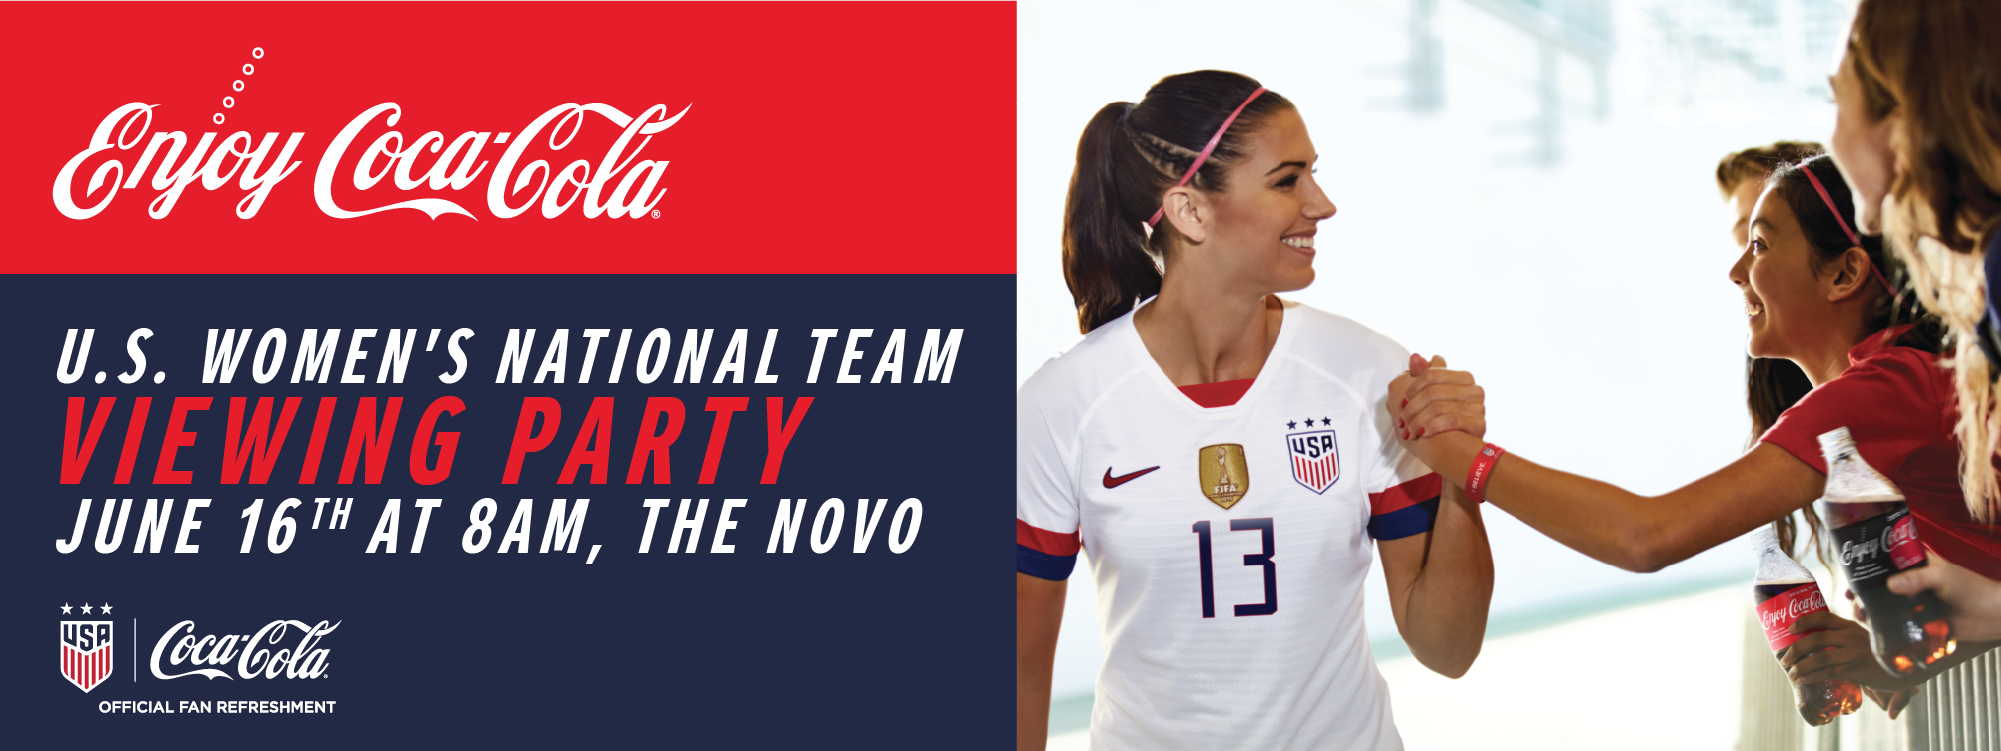 Coca-Cola U.S. Women's National Team Viewing Party | L.A. LIVE